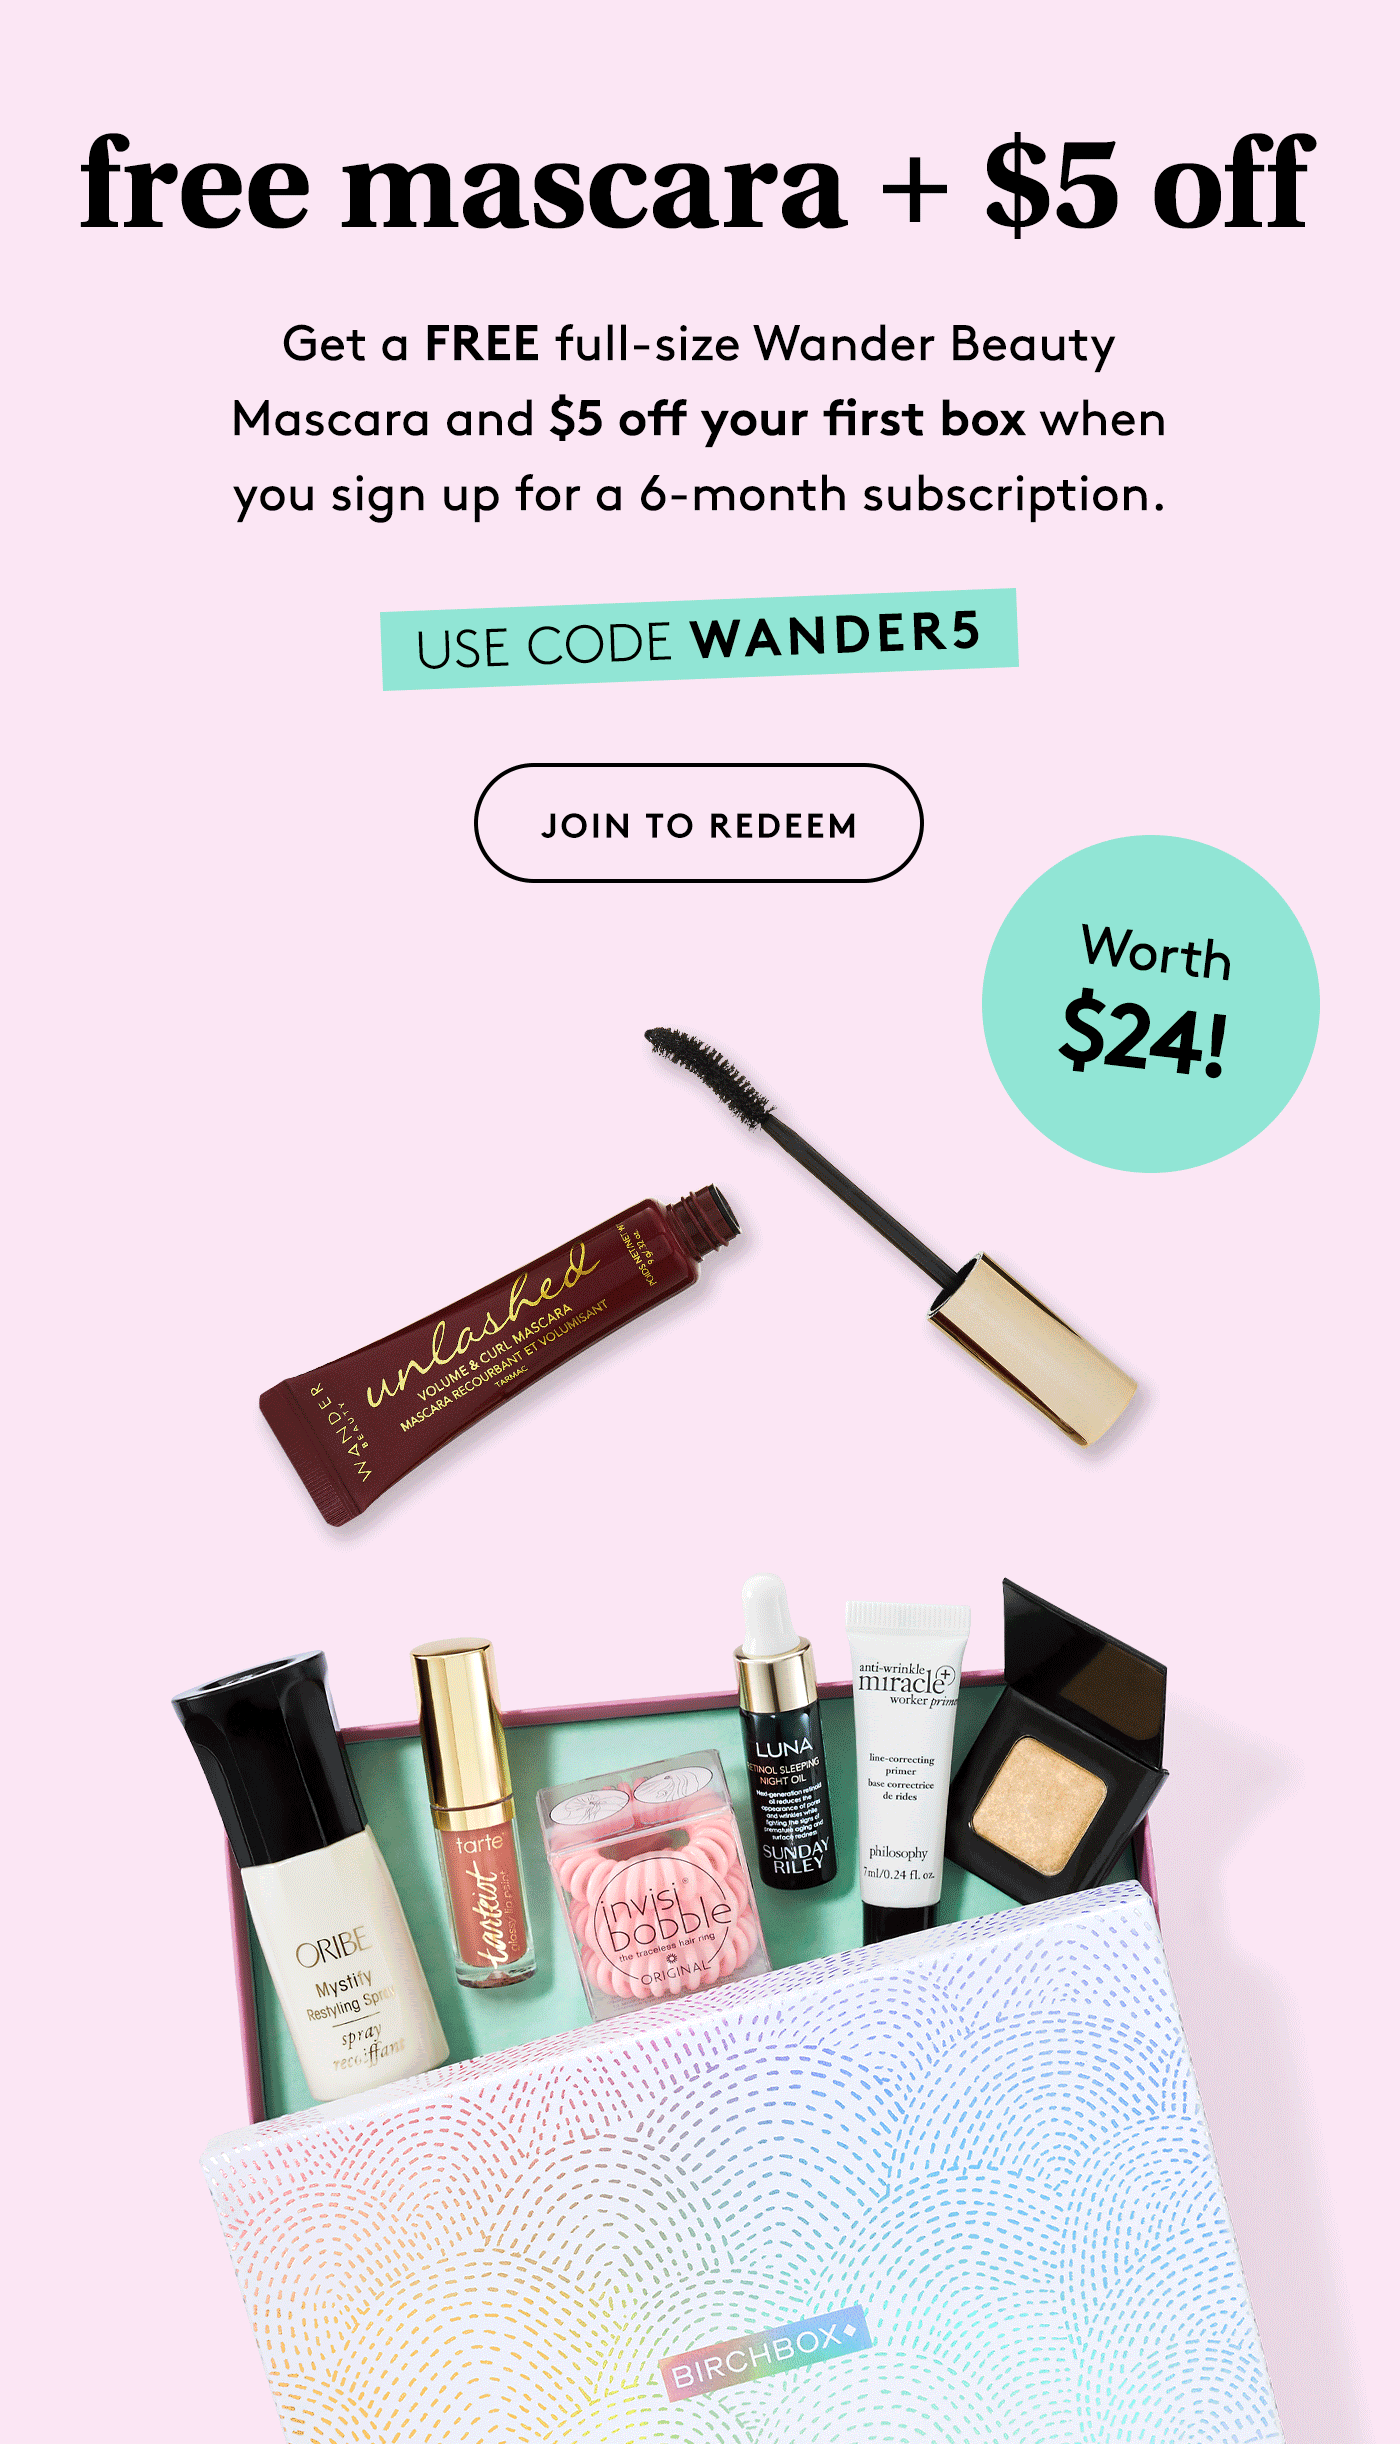 Birchbox Coupon: FREE Wander Beauty Mascara + $5 Off!